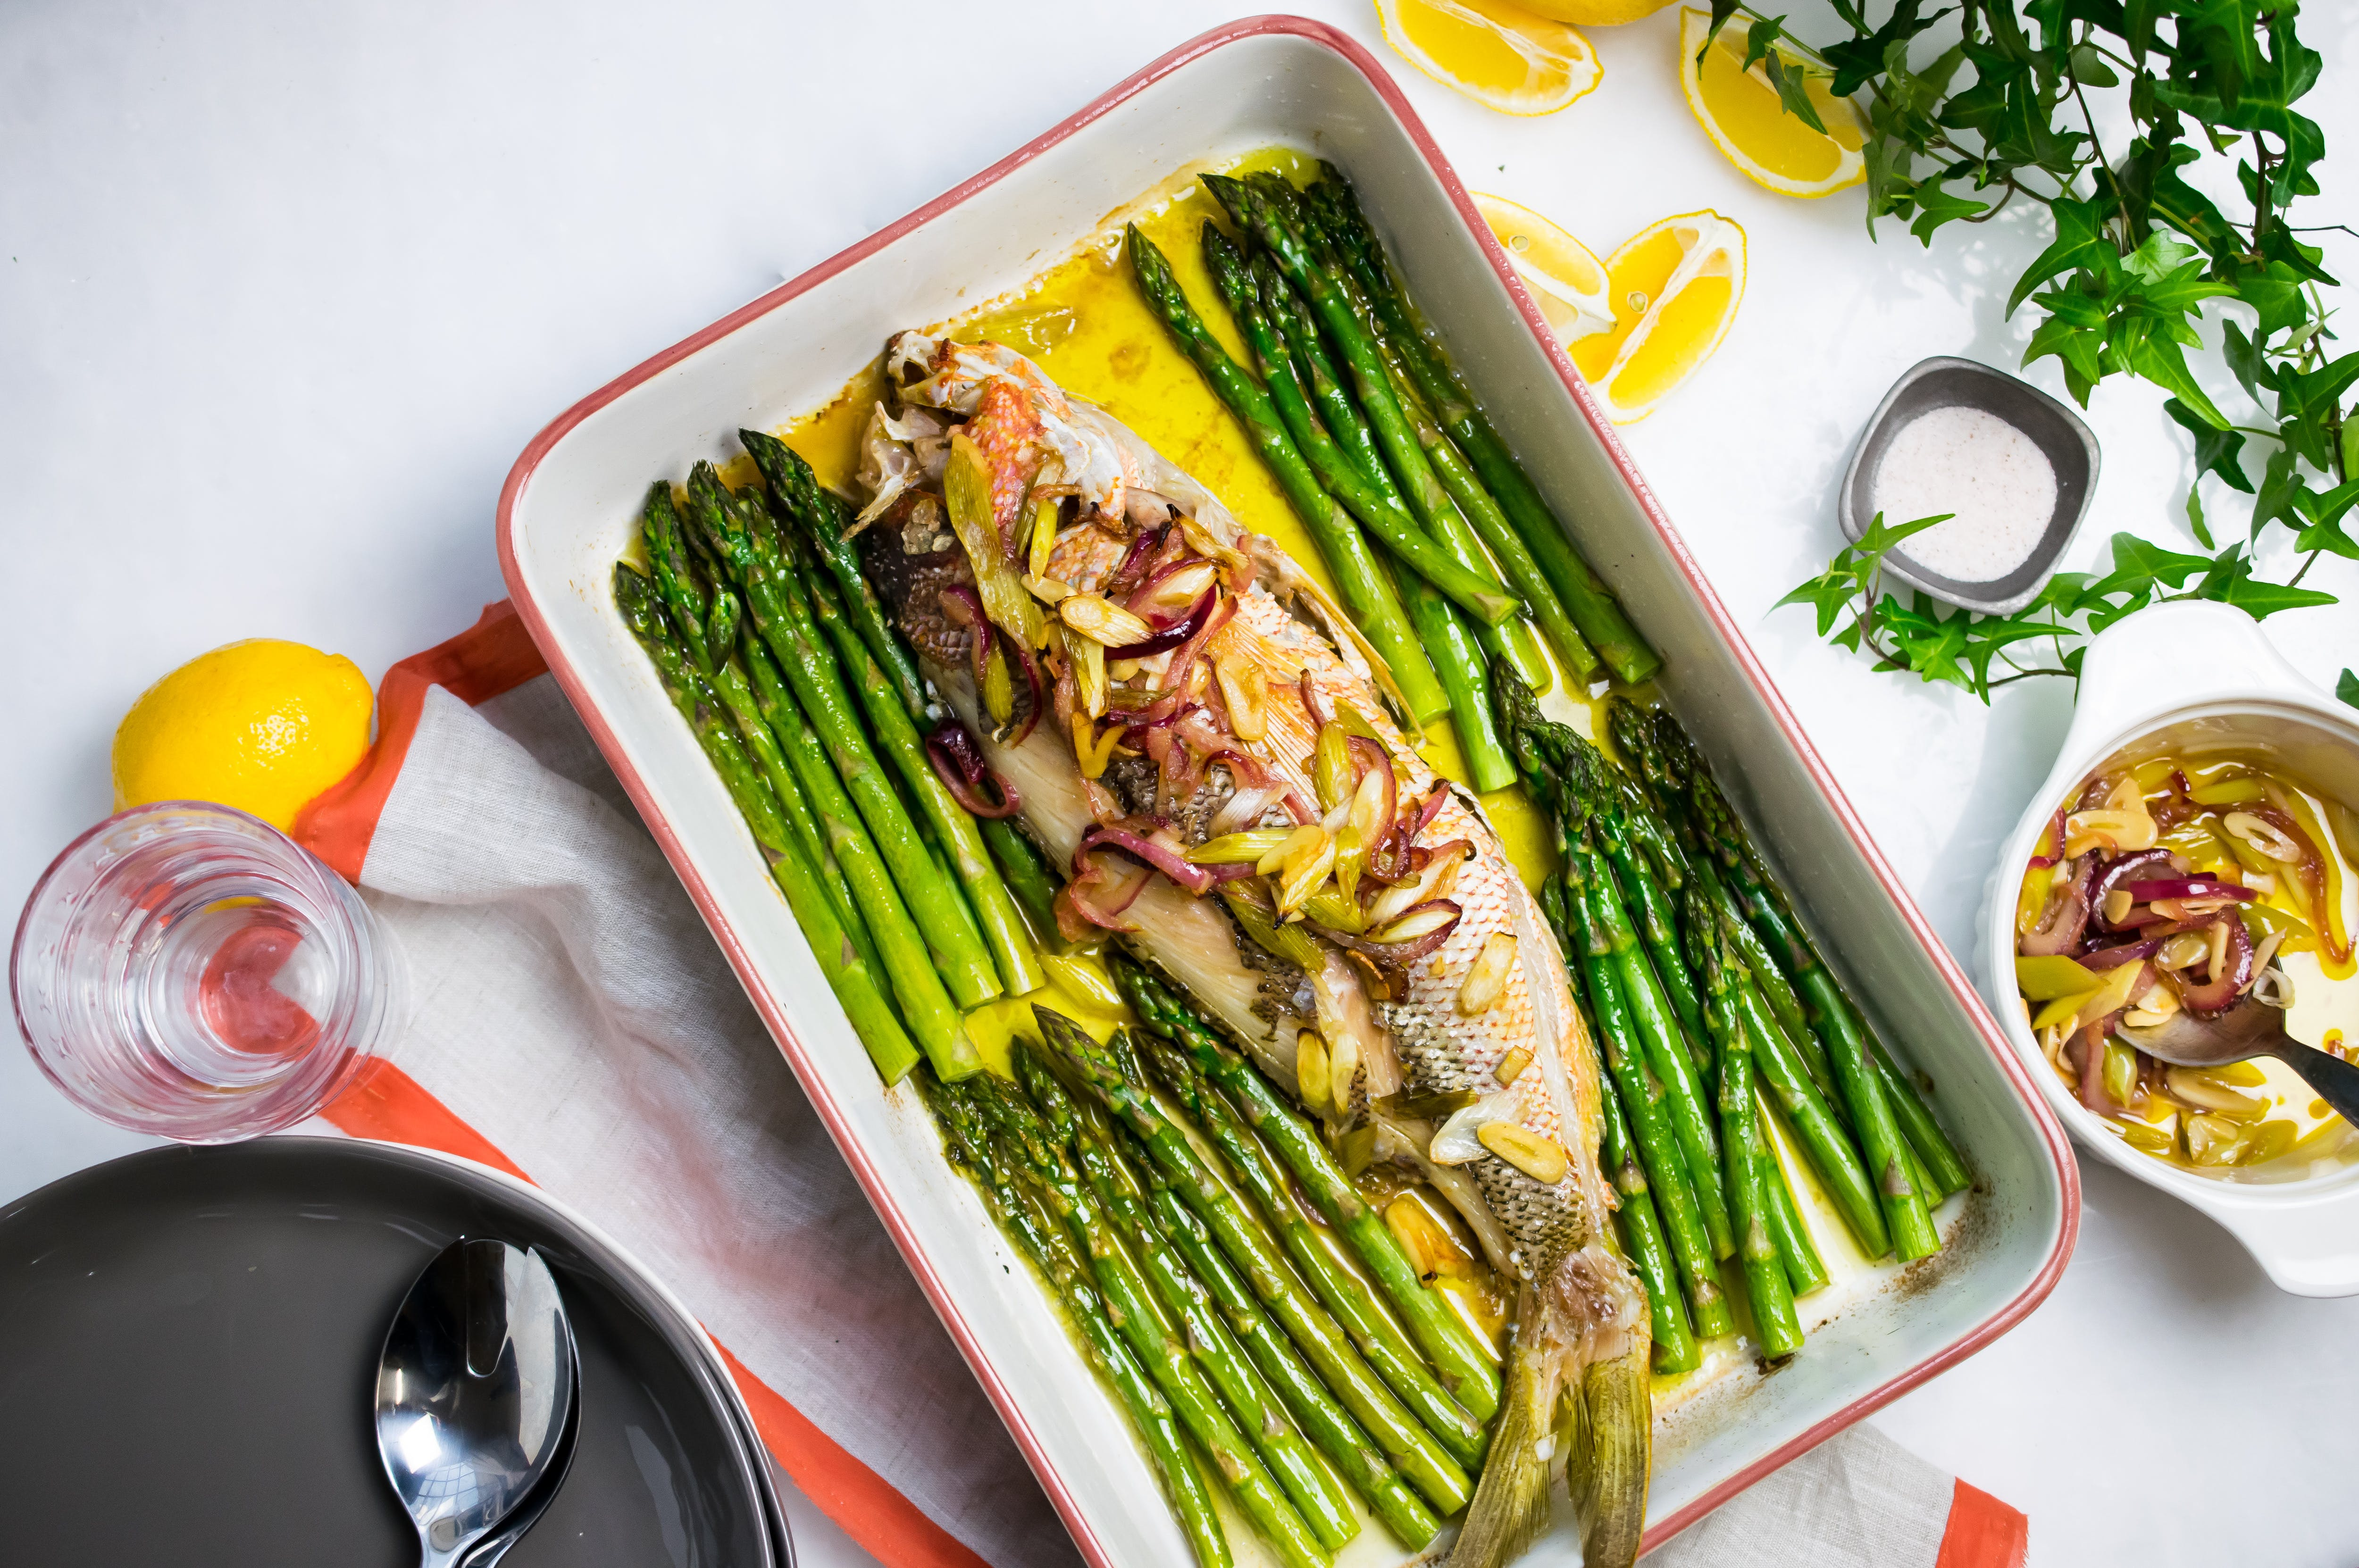 Baked snapper with onions and asparagus